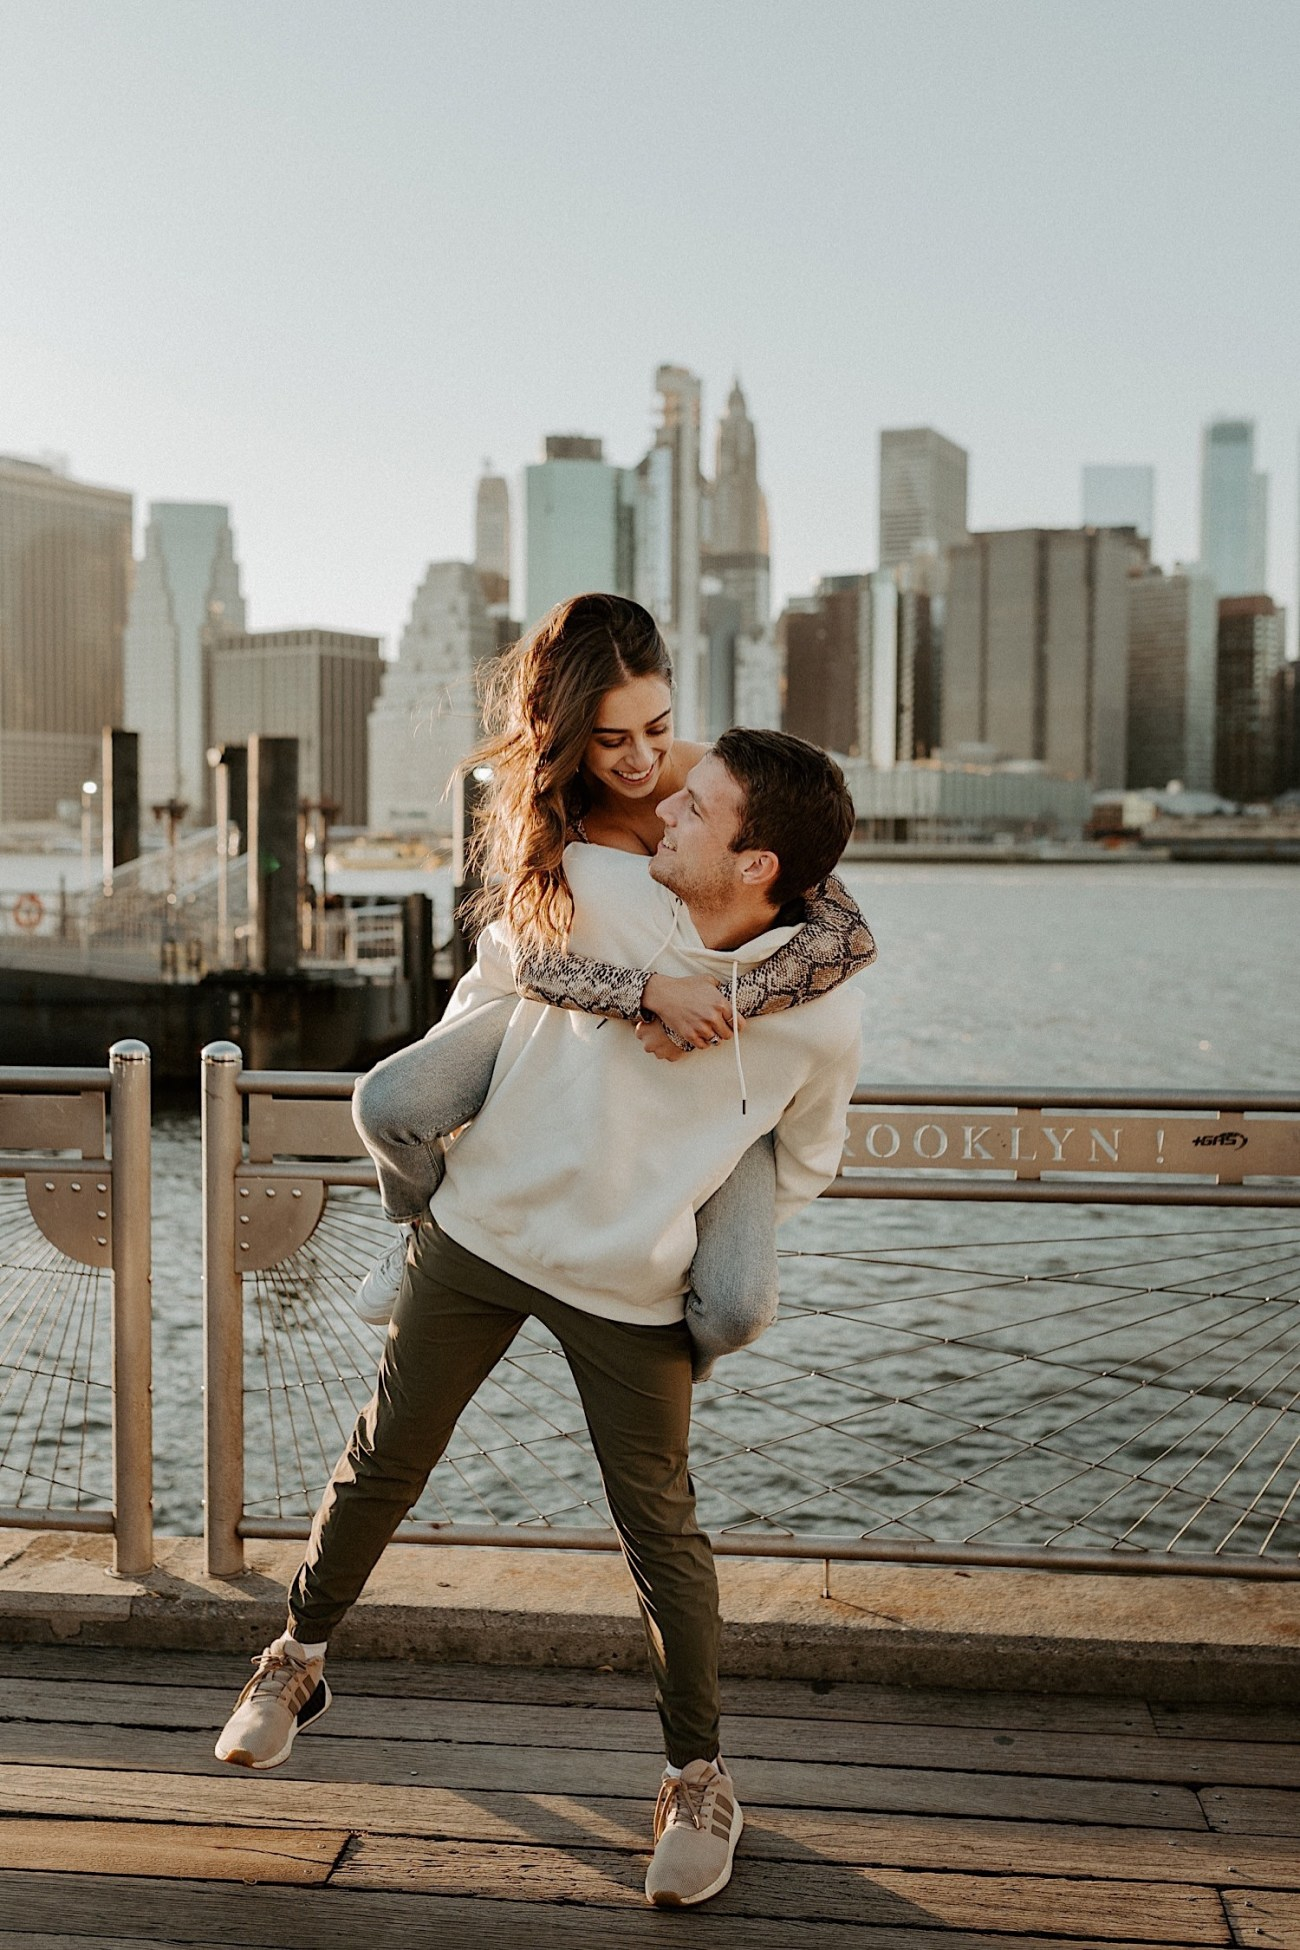 Brooklyn Bridge Sunset Engagement Photos New York City Wedding Photographer 019